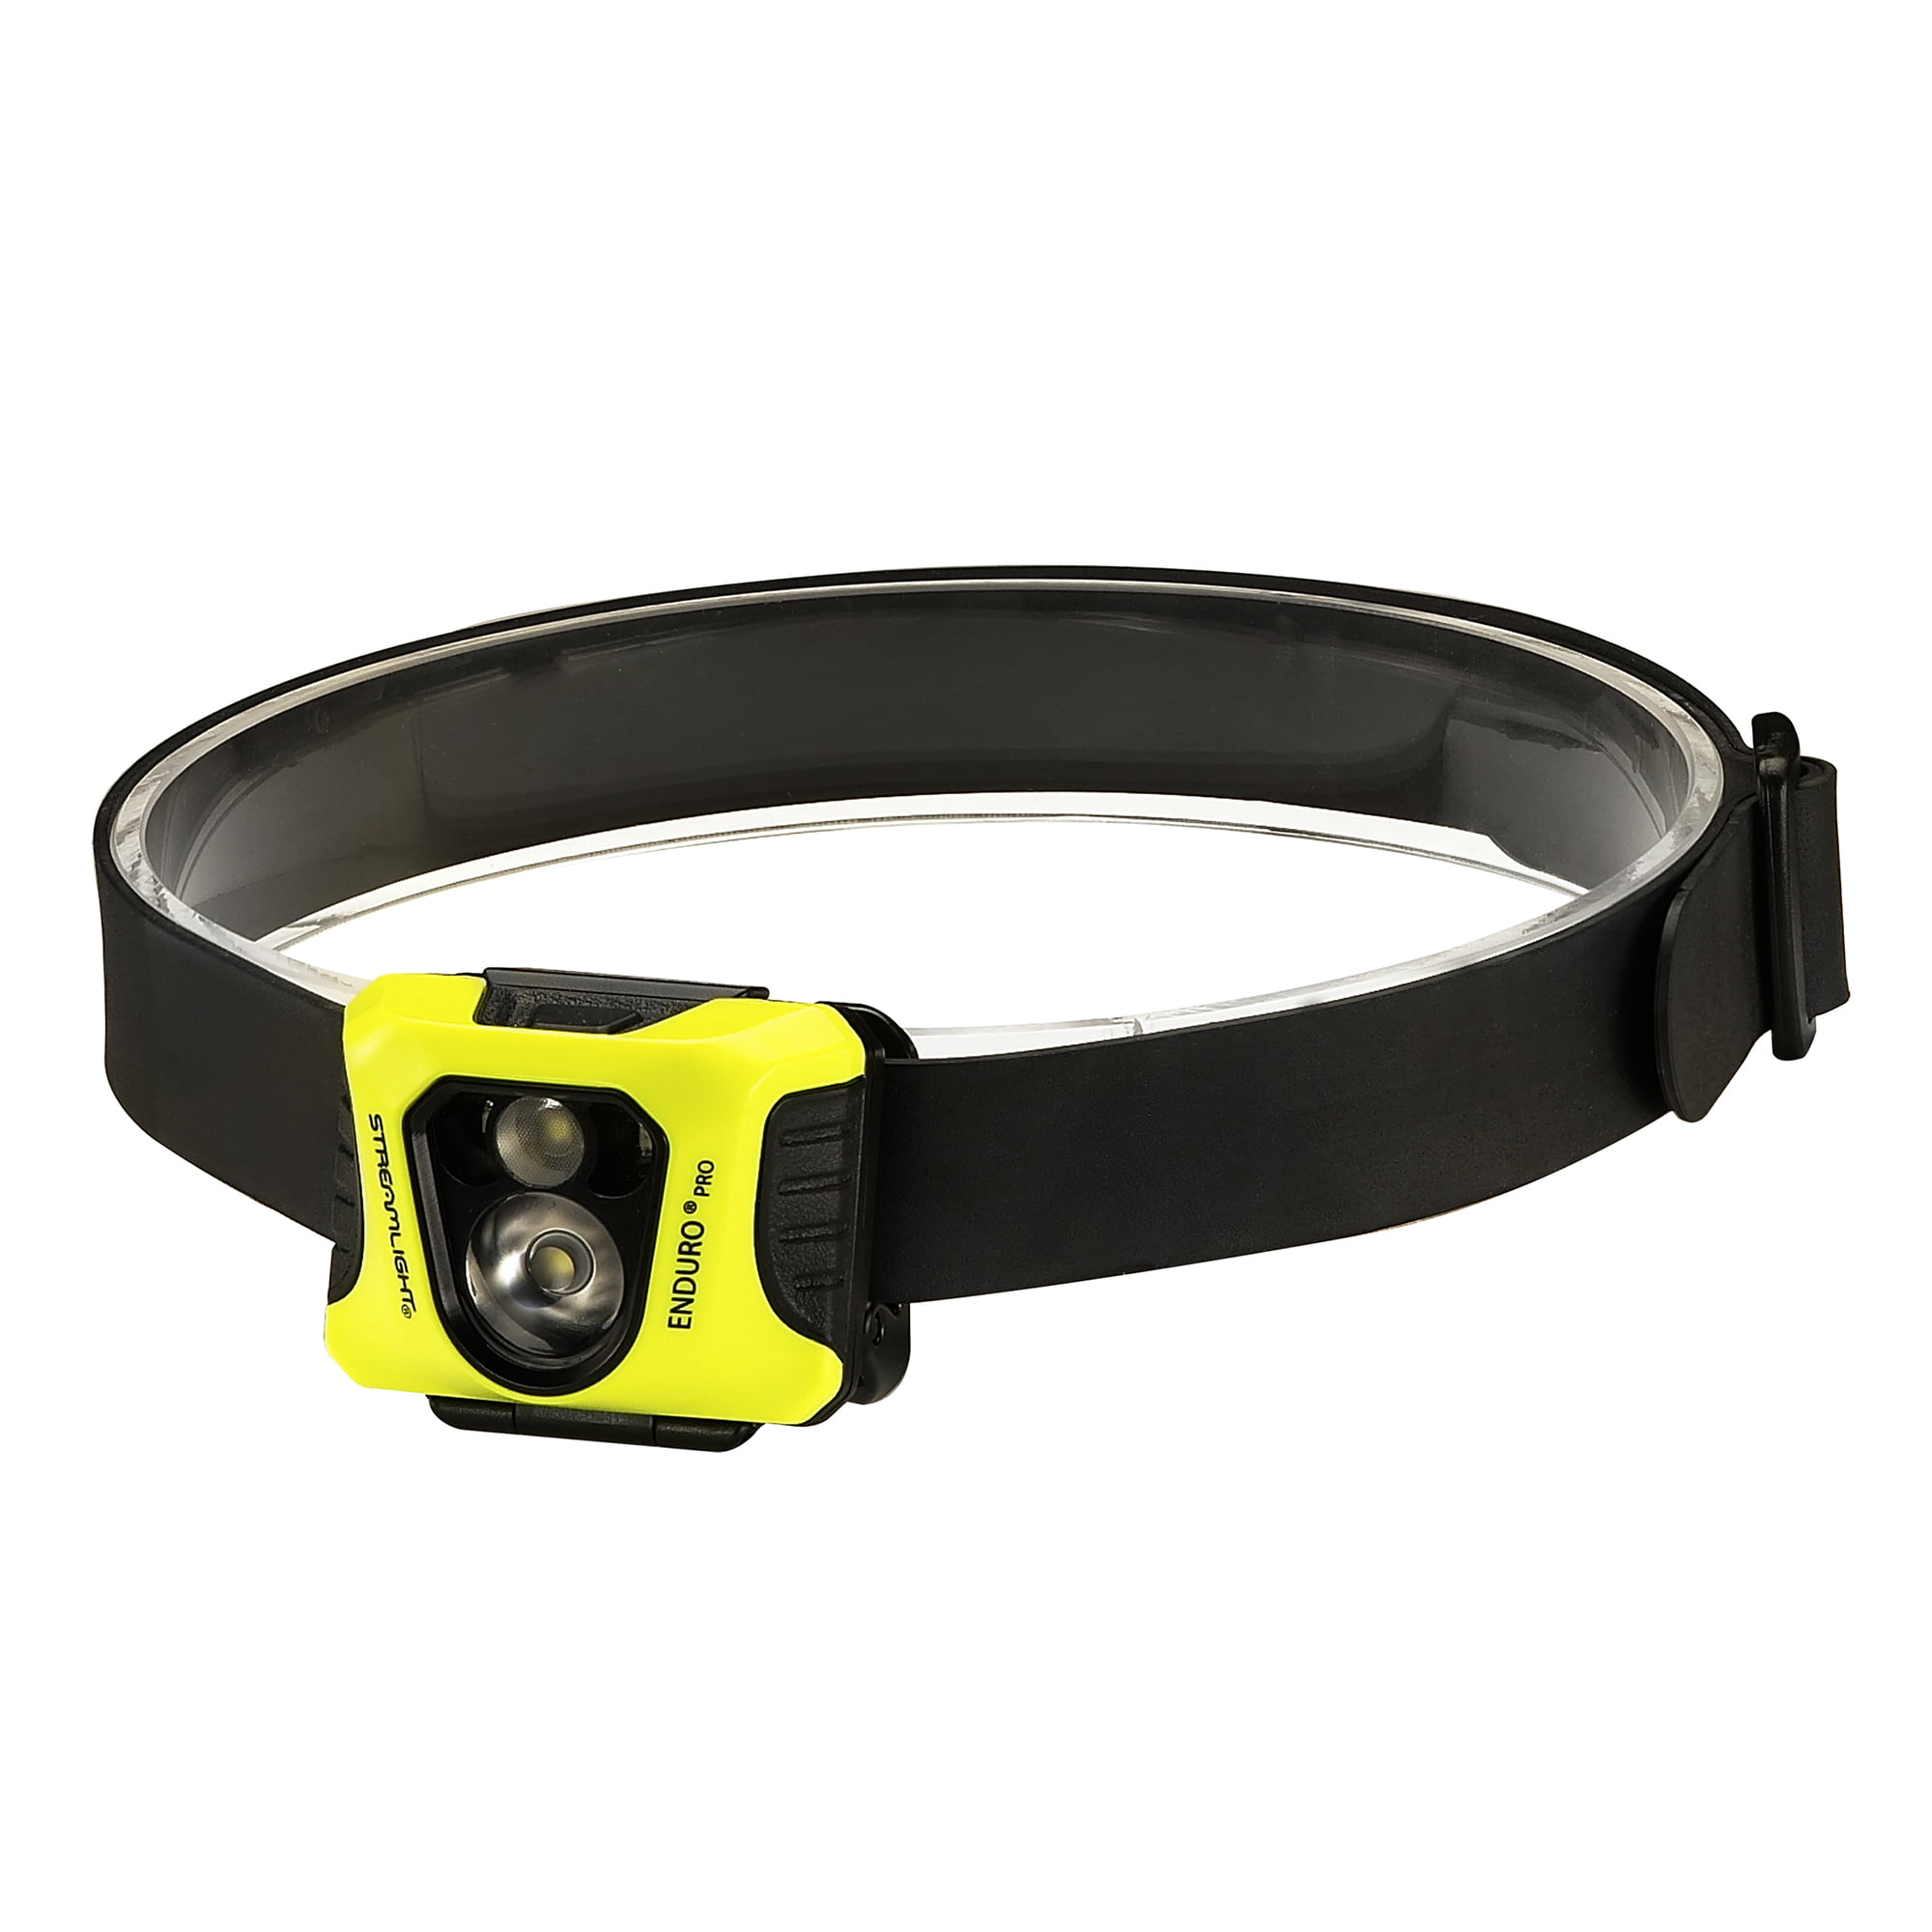 Streamlight Enduro Pro 3 AAA Alkaline Batteries, Elastic Headstrap and Yellow Fascia, Boxed by Streamlight